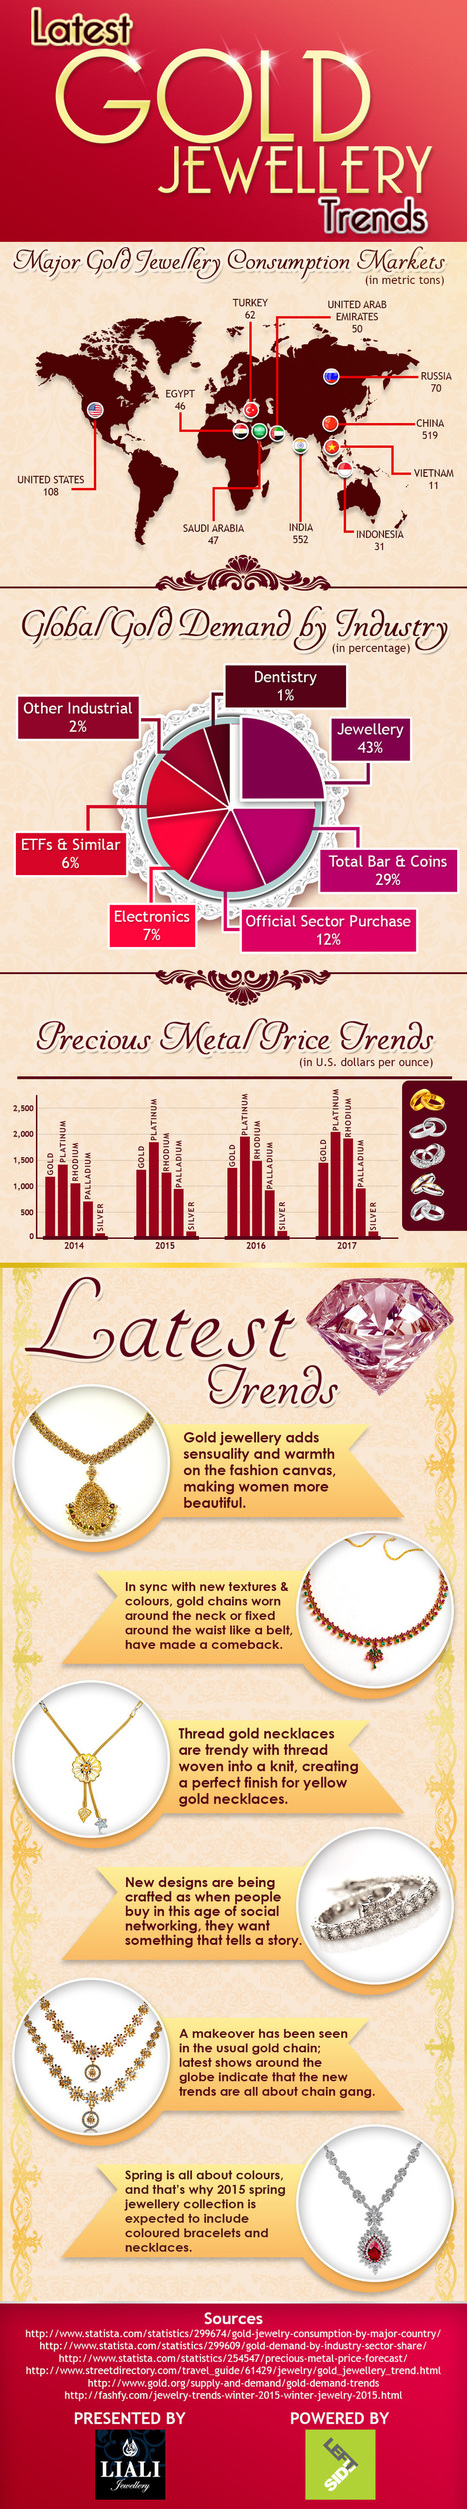 The Latest Gold Jewellery Trends in Global Industr | Infographic | Scoop.it